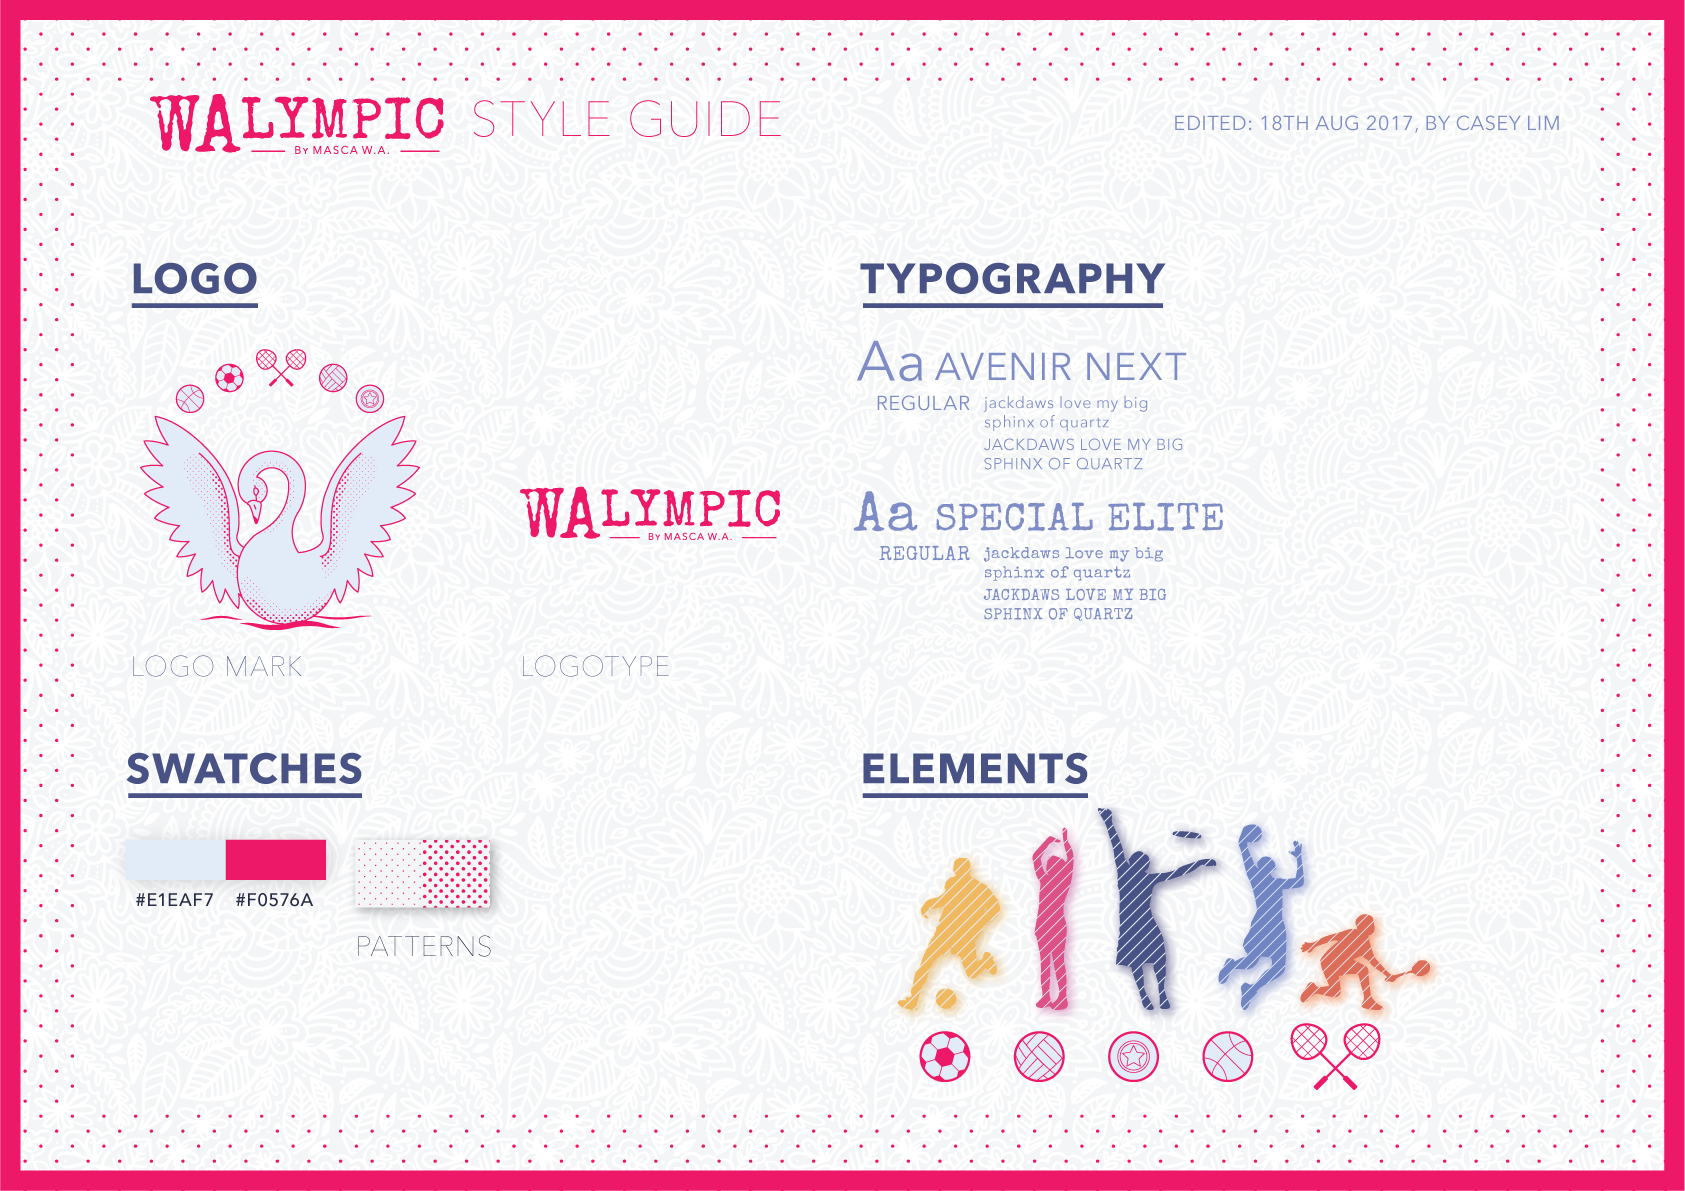 Merdeka Month Style Guide Walympic